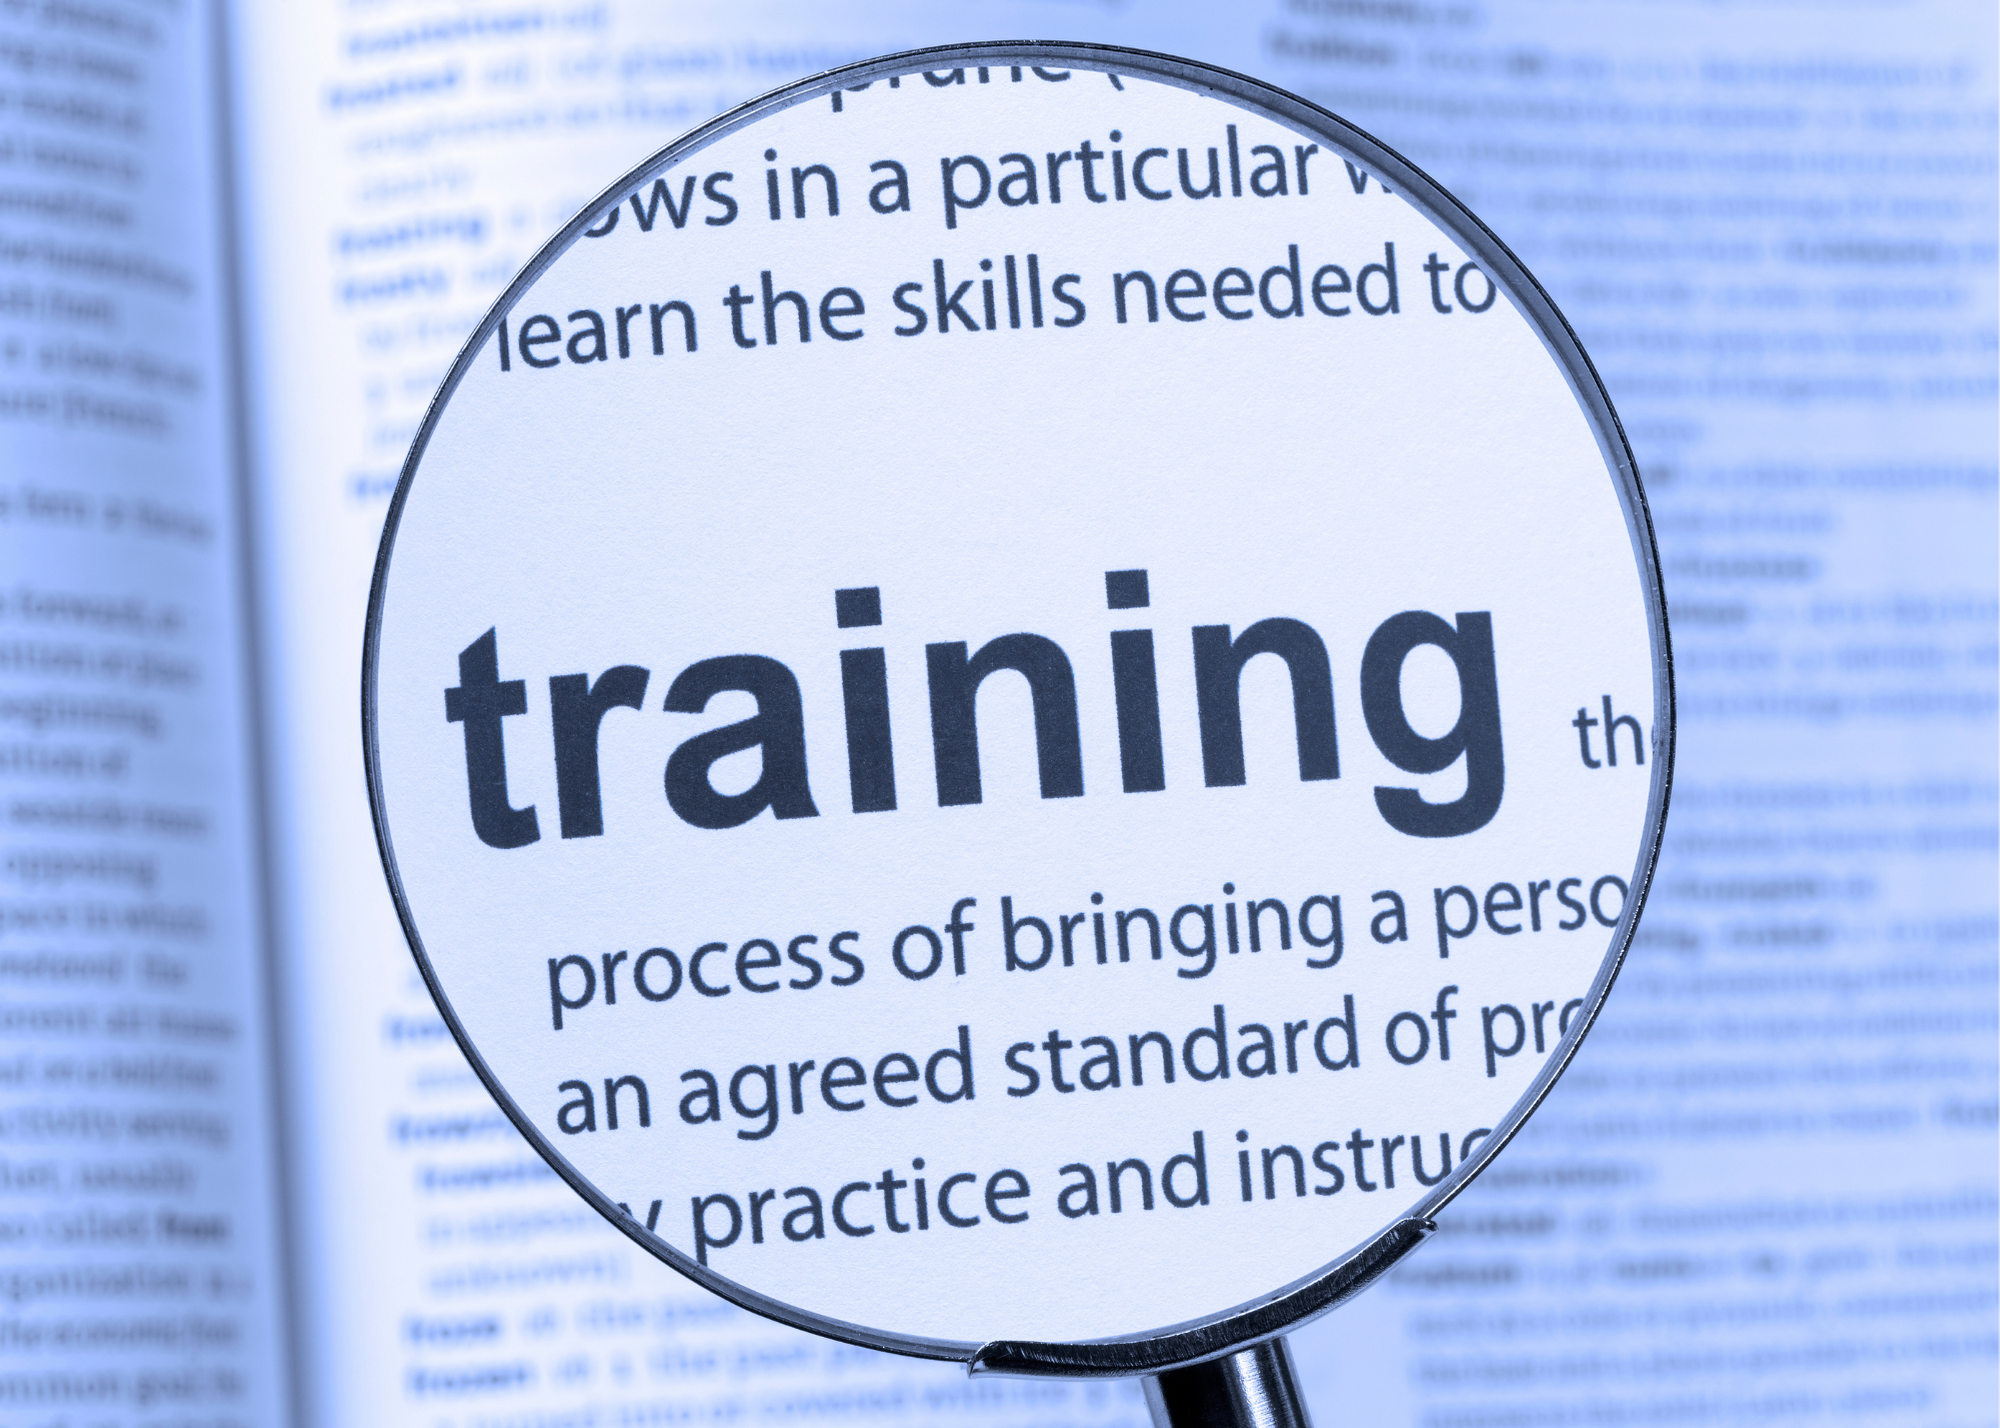 Are you meeting required training